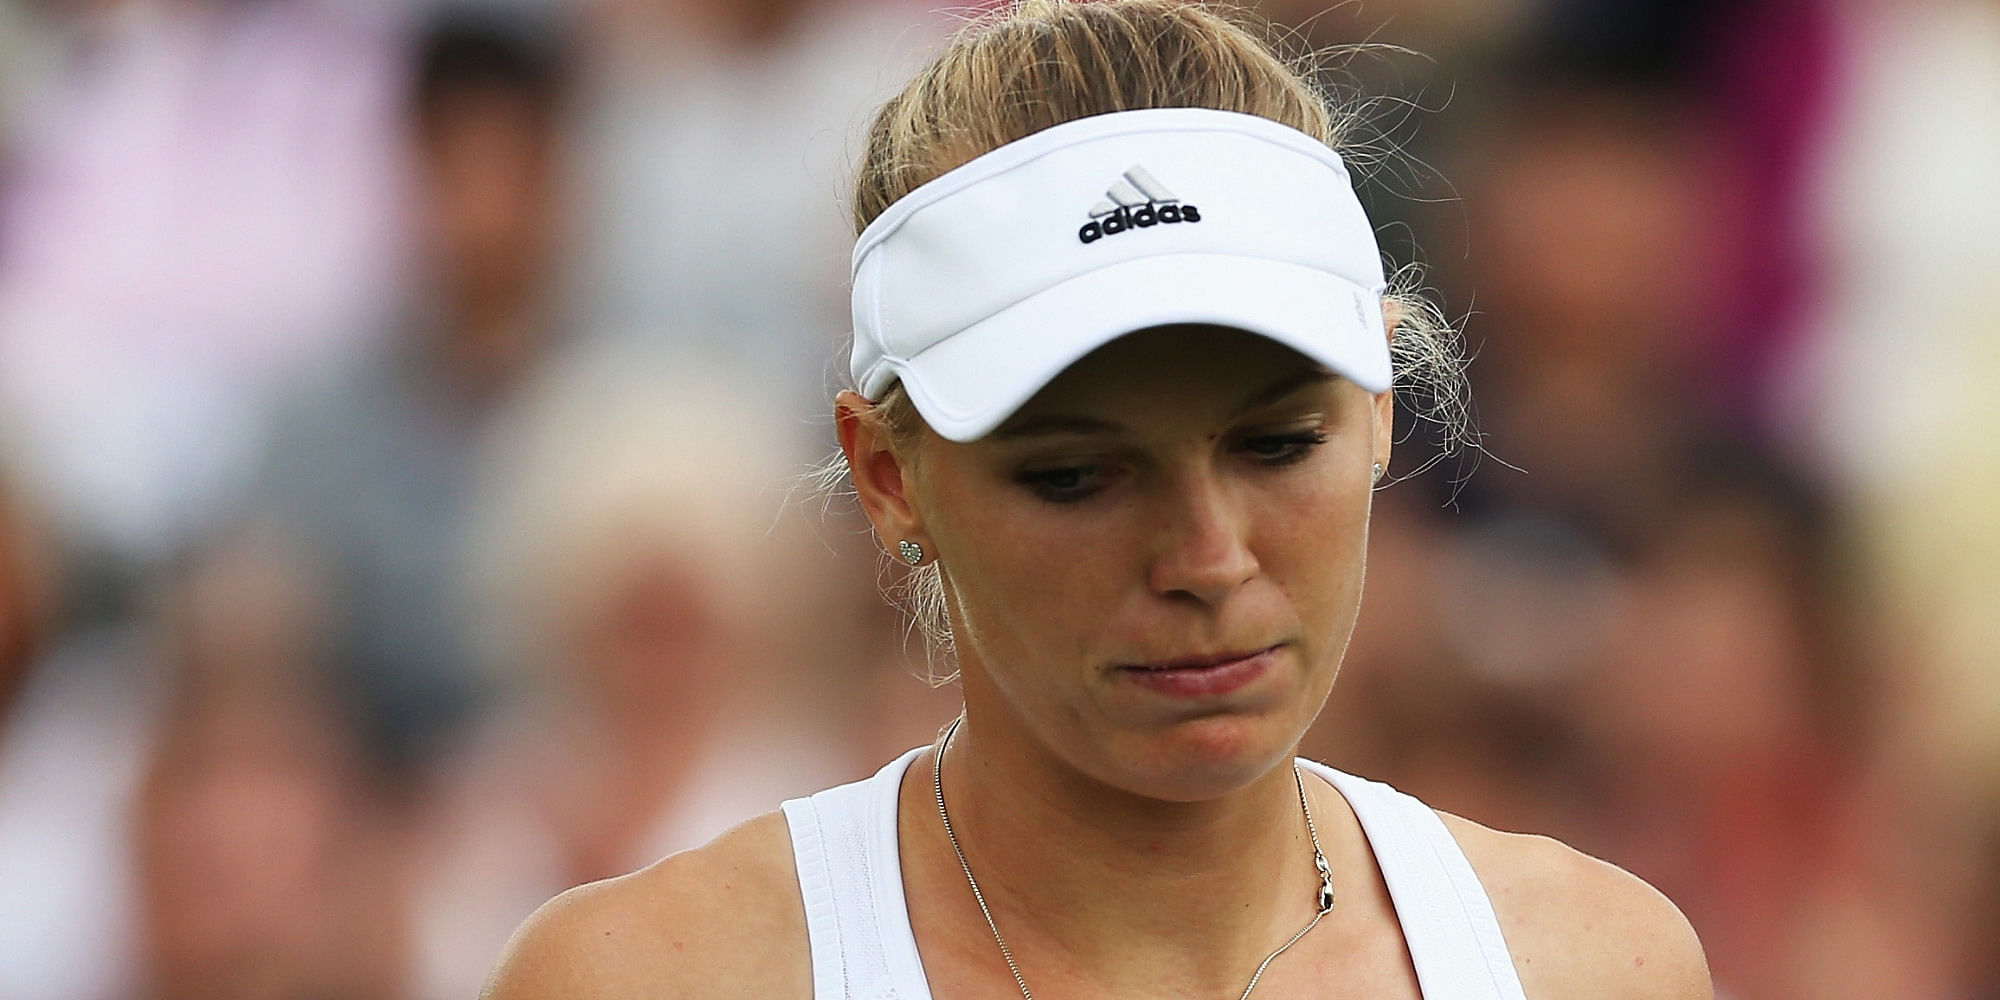 Caroline Wozniacki joins Roger Federer in the on-court clock bandwagon